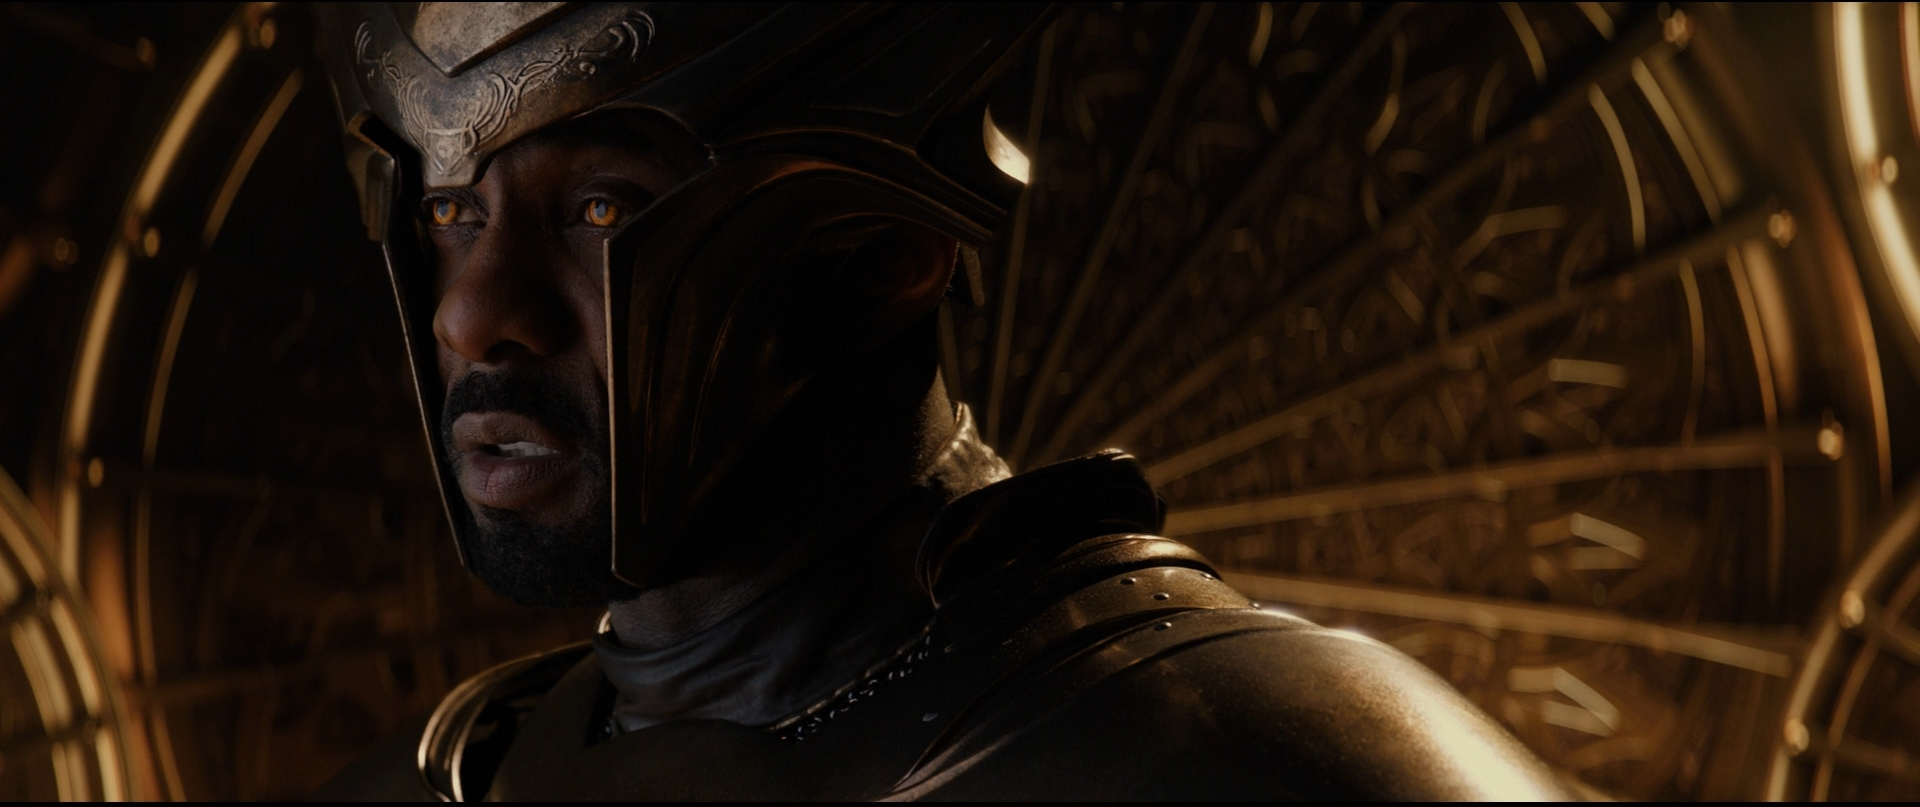 http://vignette1.wikia.nocookie.net/marvelcinematicuniverse/images/4/40/Thor-TDW-Heimdall.jpg/revision/latest?cb=20140802185526